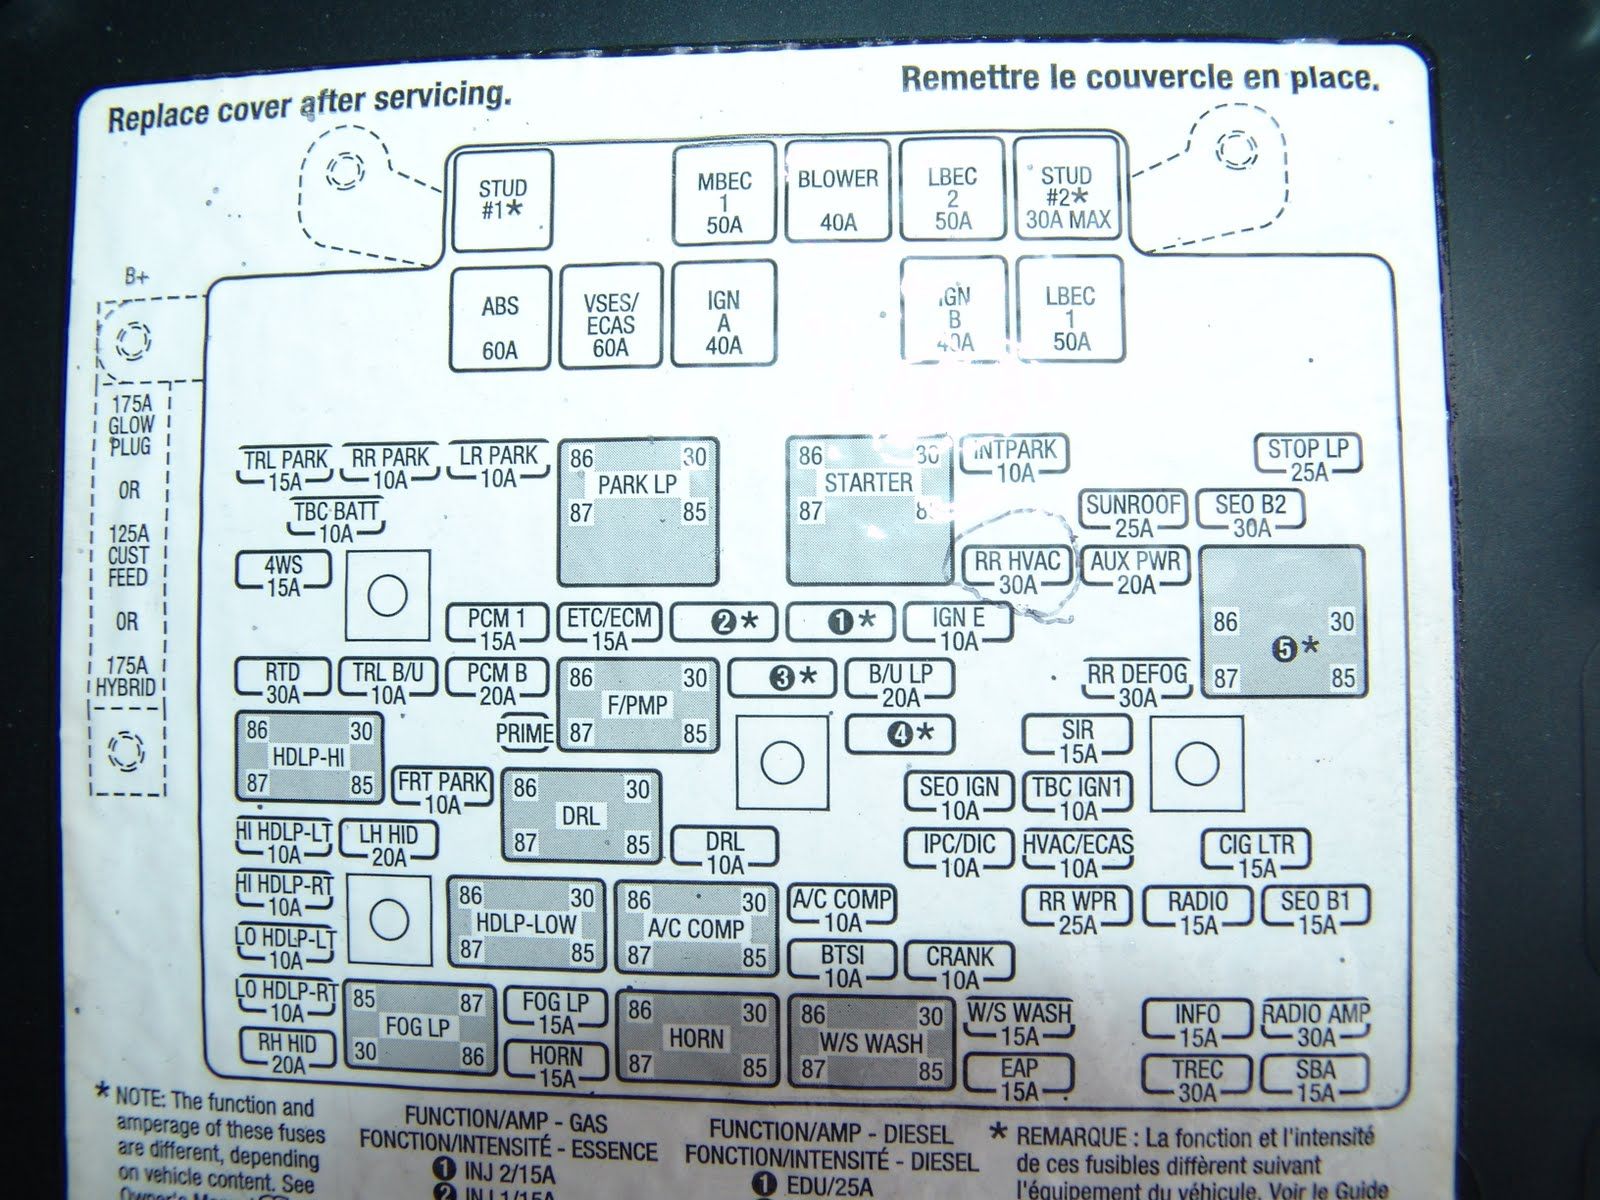 2004 chevy tahoe fuse box diagram mEZFgxa chevy tahoe fuse box wiring diagram simonand 2007 chevy tahoe fuse box diagram at edmiracle.co